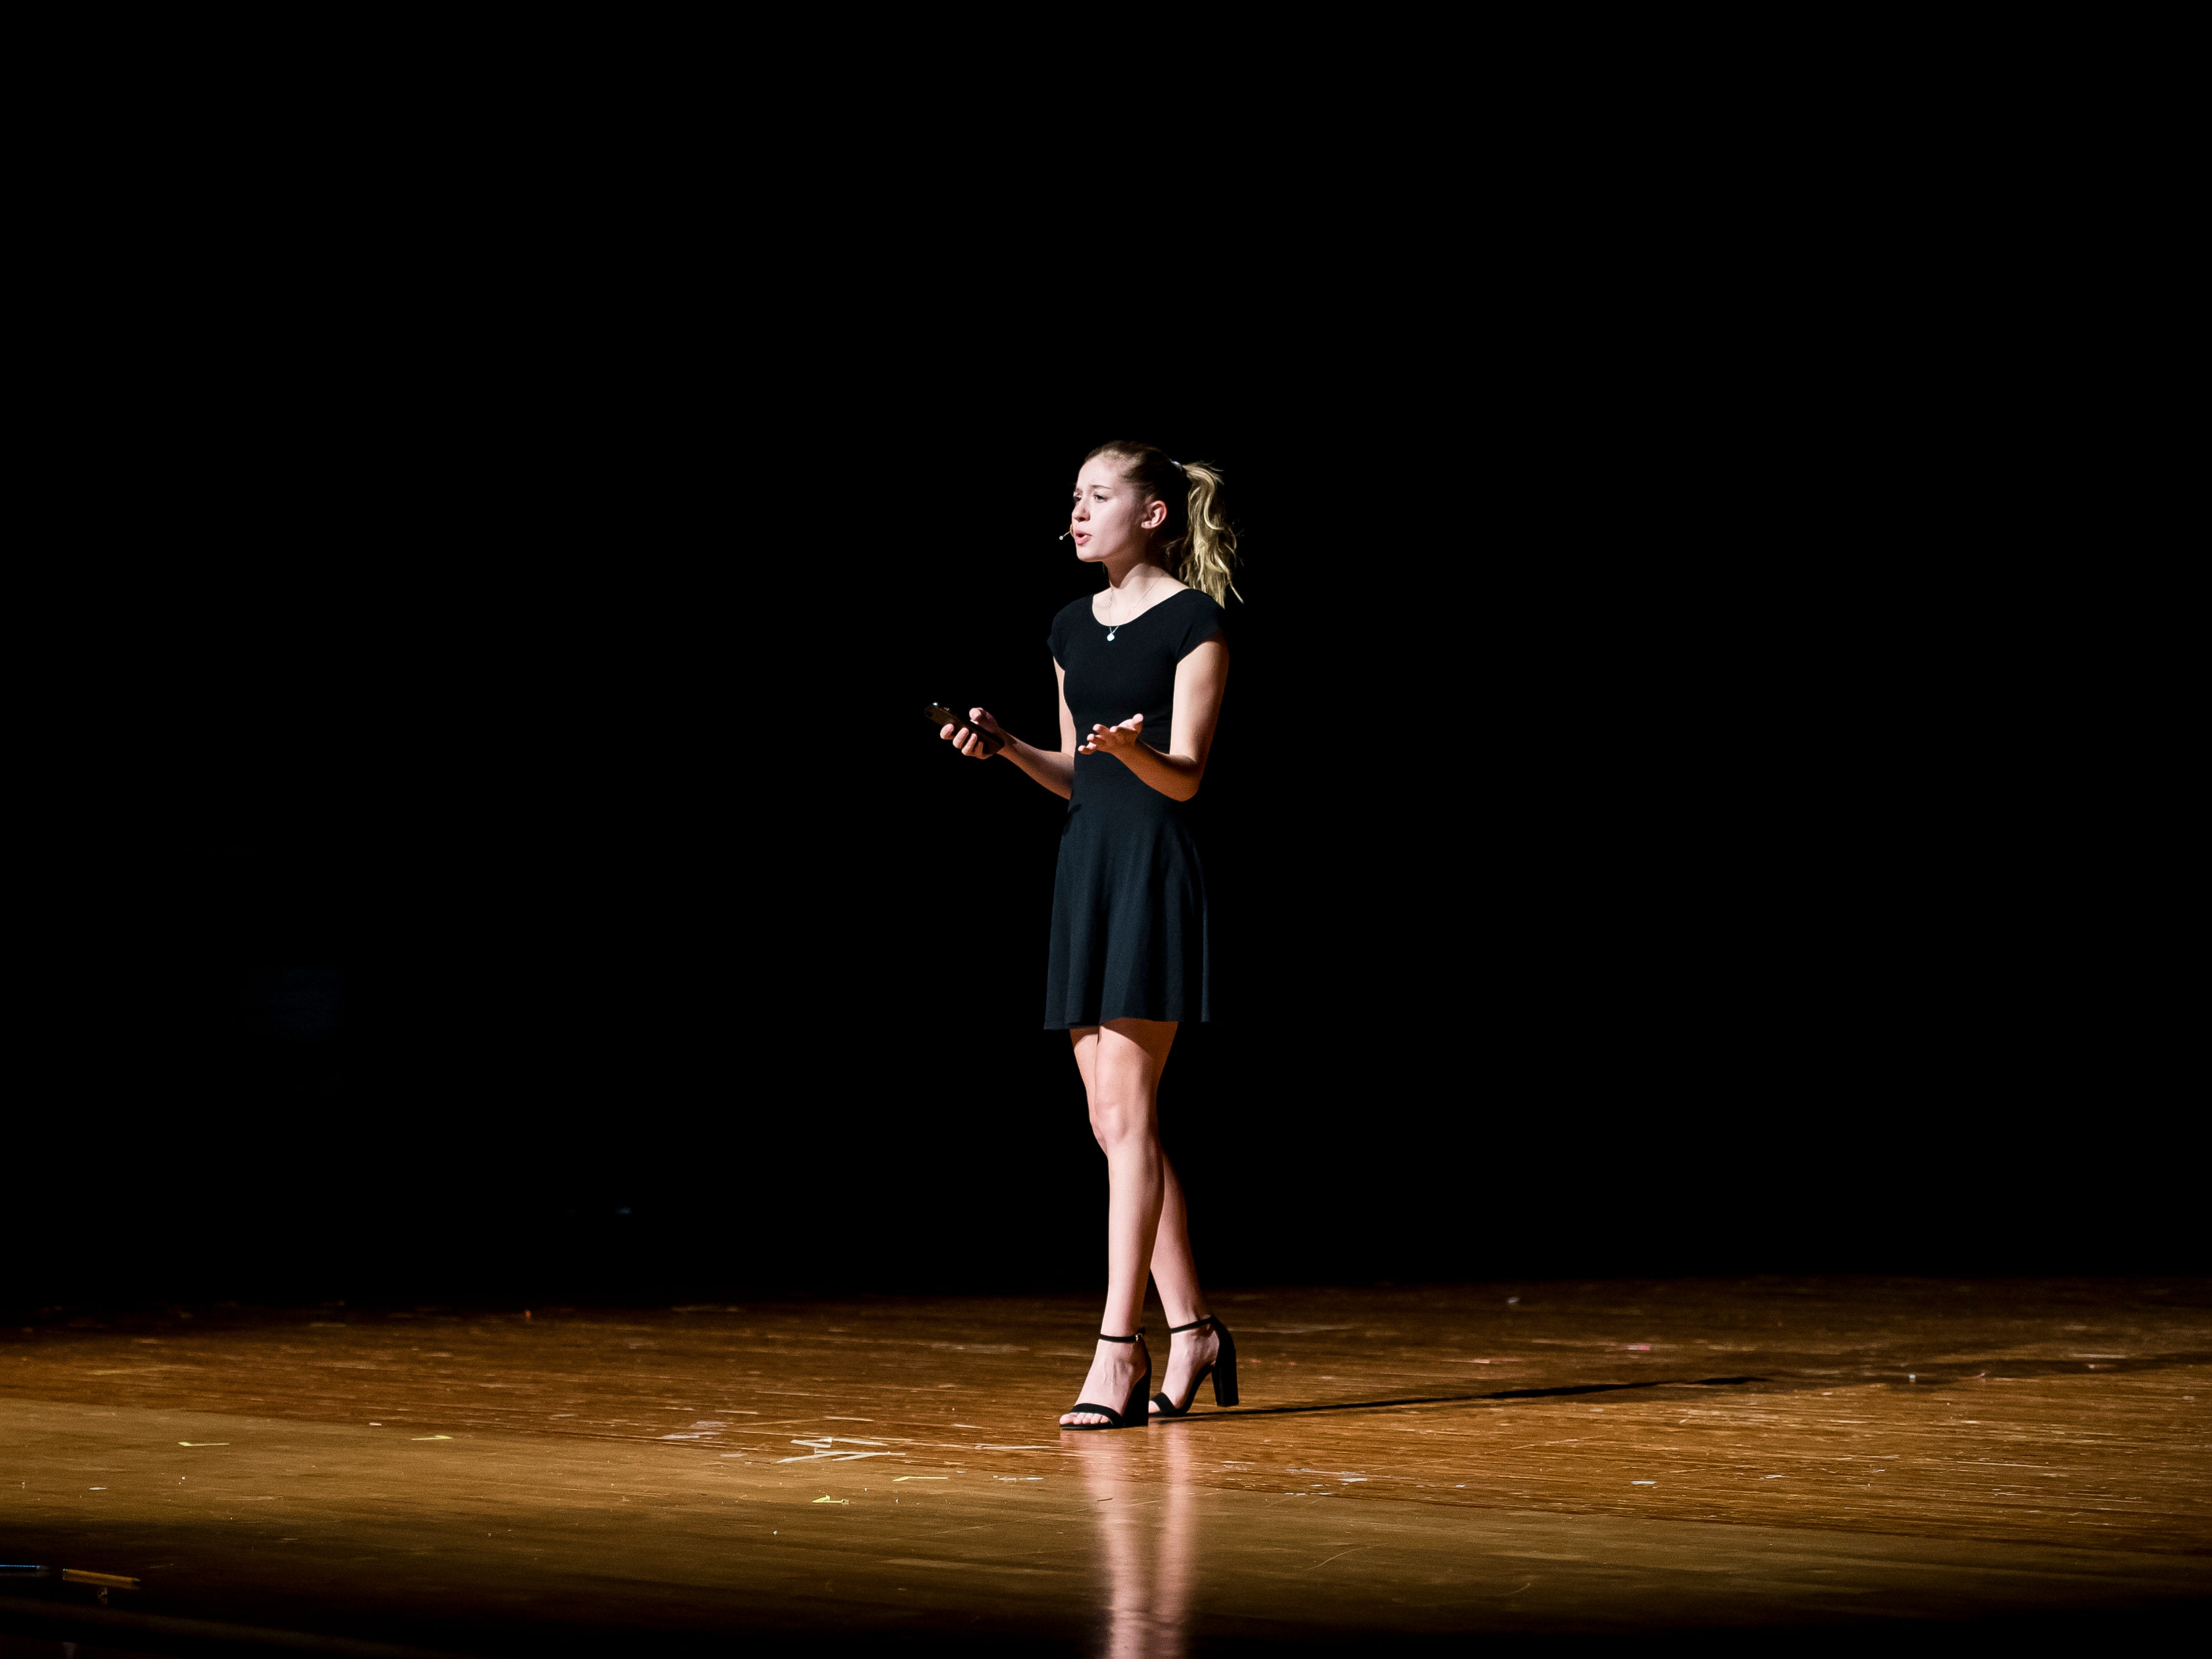 South Western's Grace Dickmyer performs an original poem during a rehearsal session for the Miss Hanover Area pageant at New Oxford High School on Oct. 17, 2018.